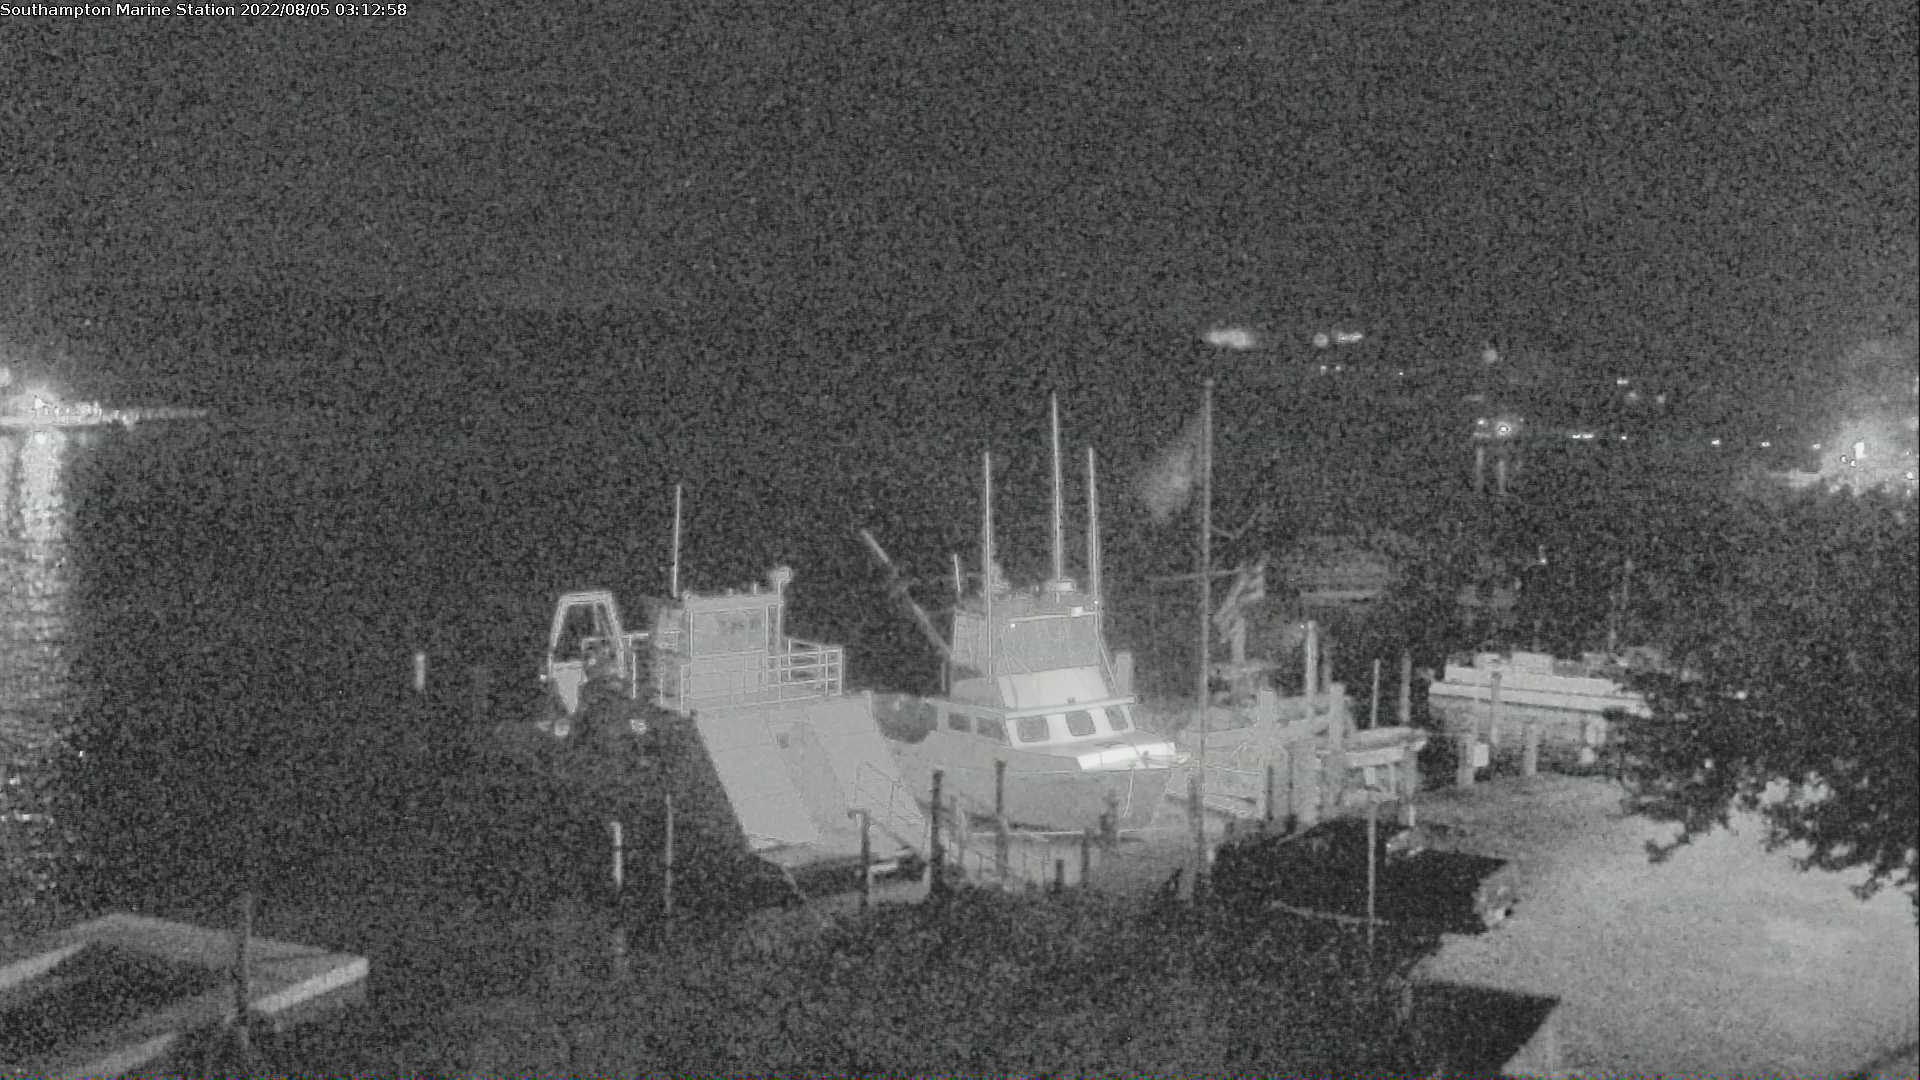 Southampton Marine Science Center Camera looking over Old Fort Pond Bay